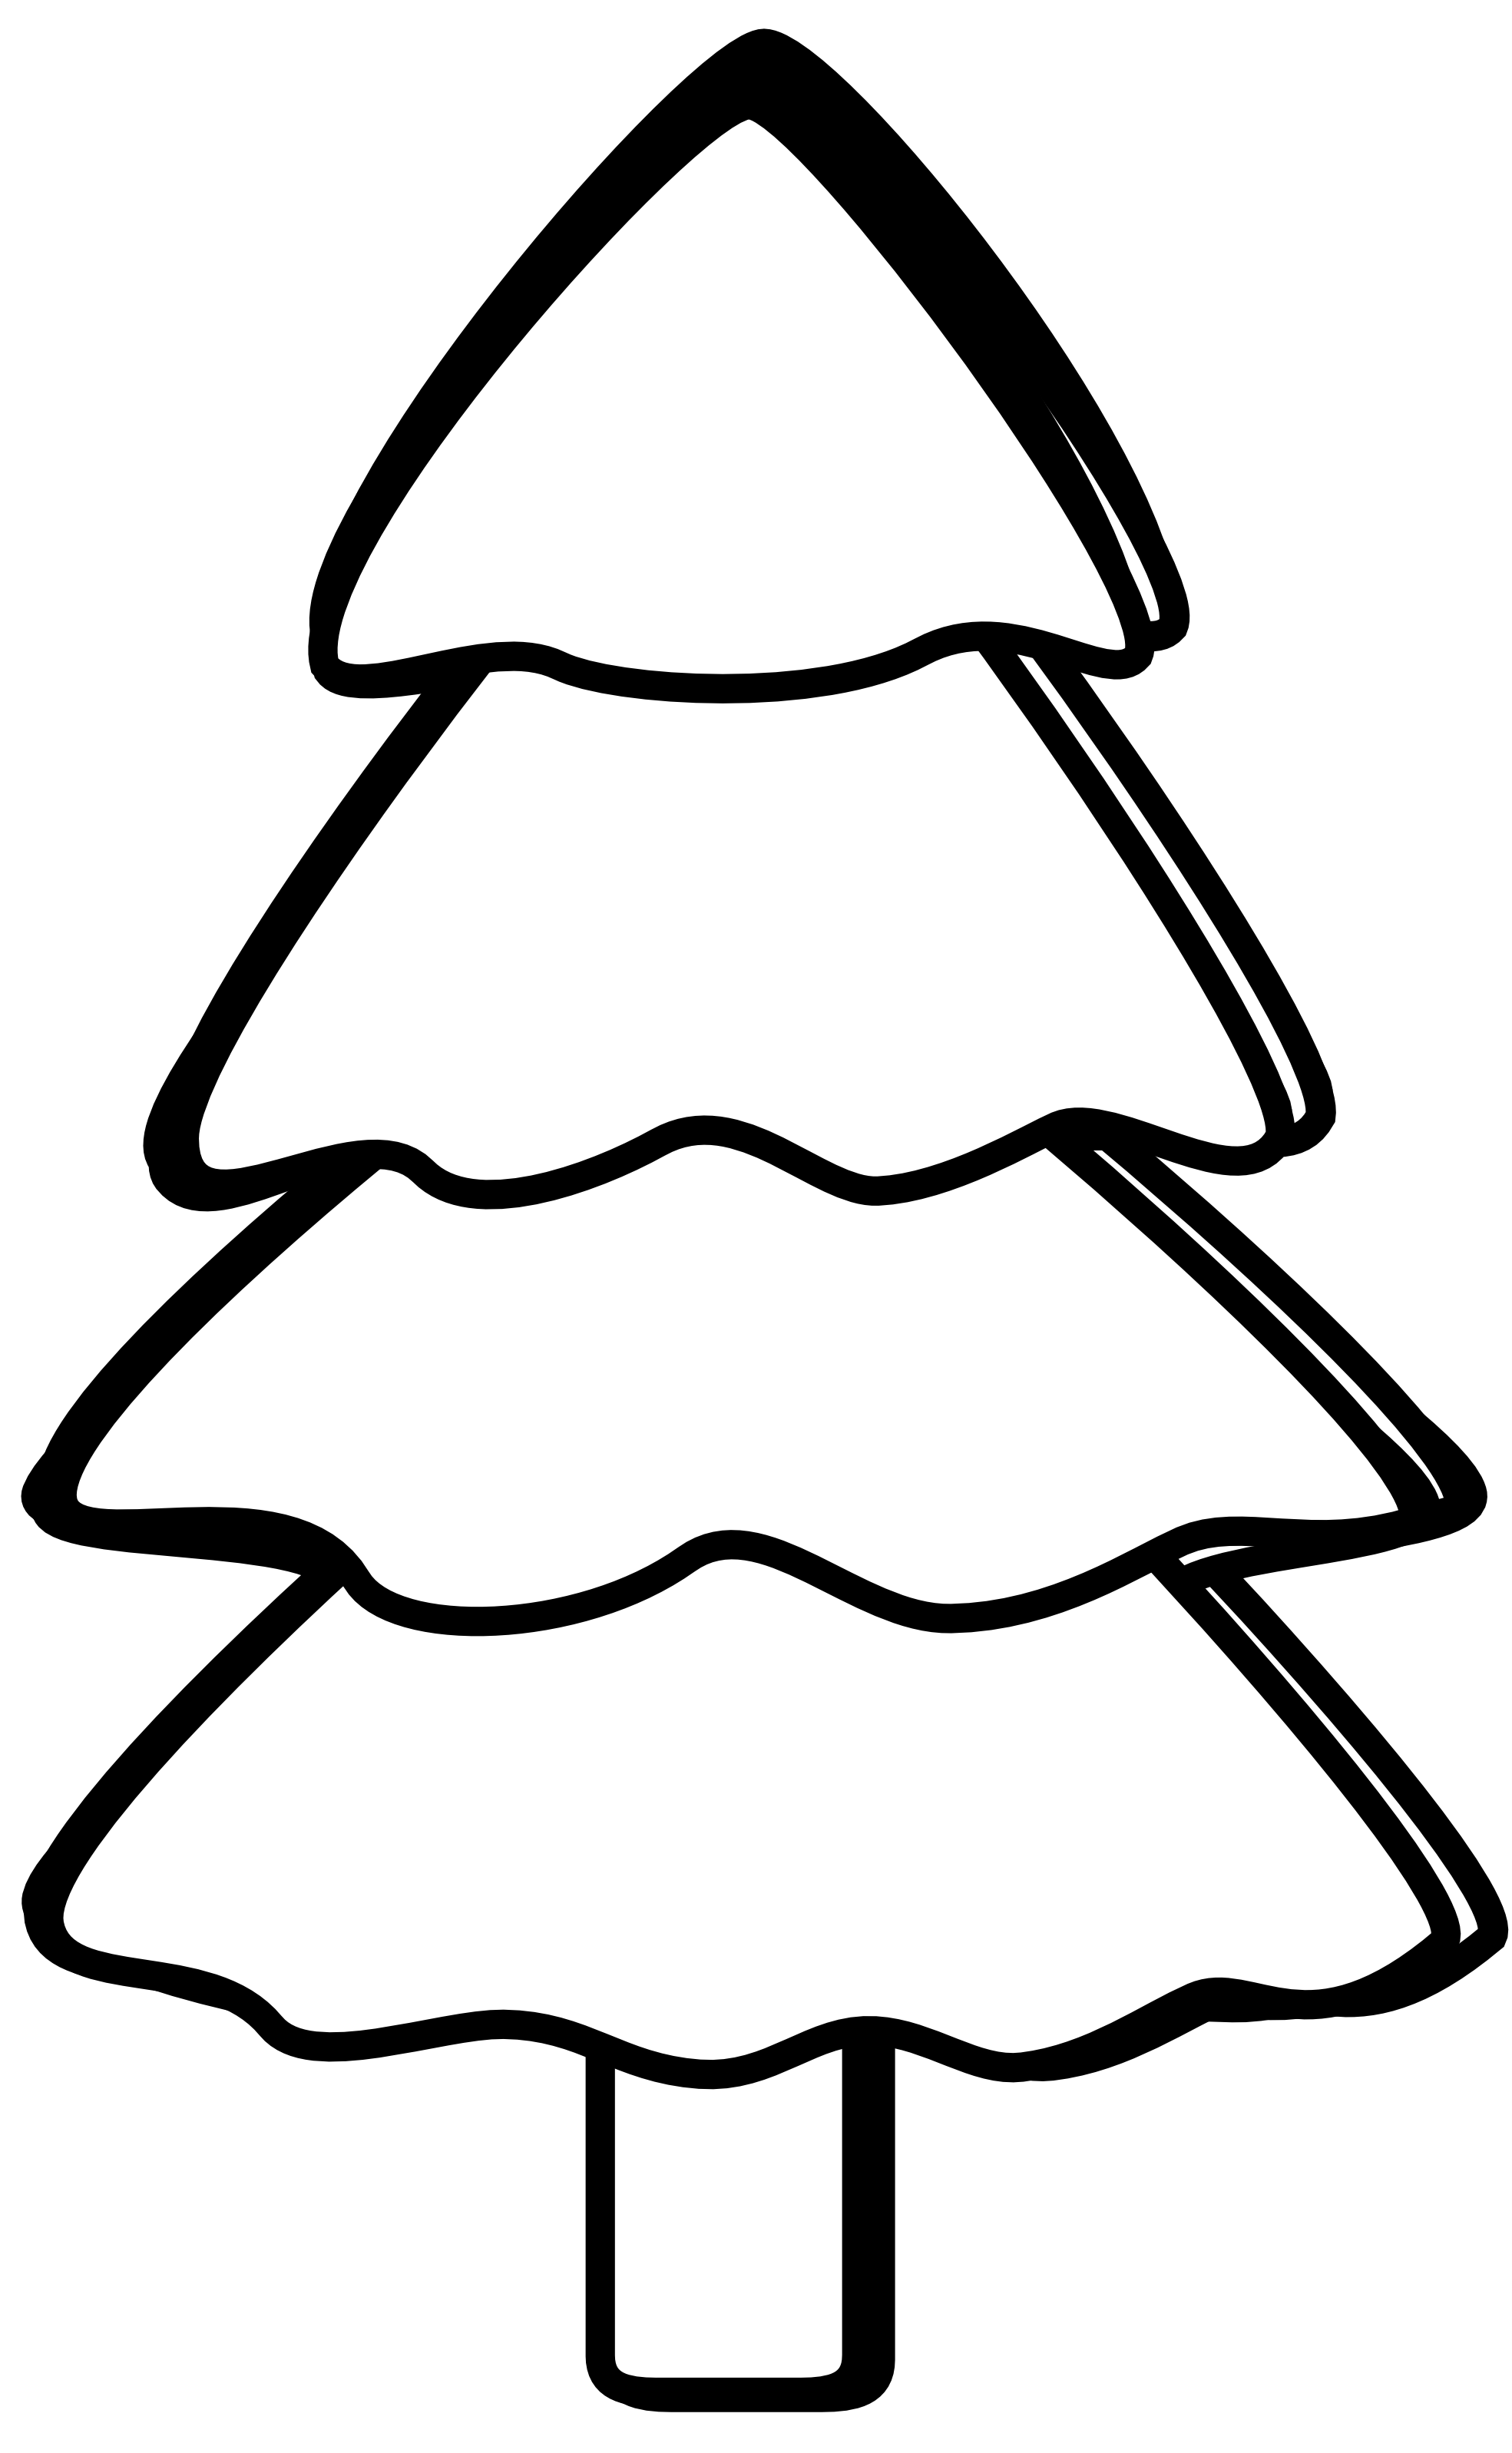 clipart stock Christmas tree panda free. Forest trees clipart black and white